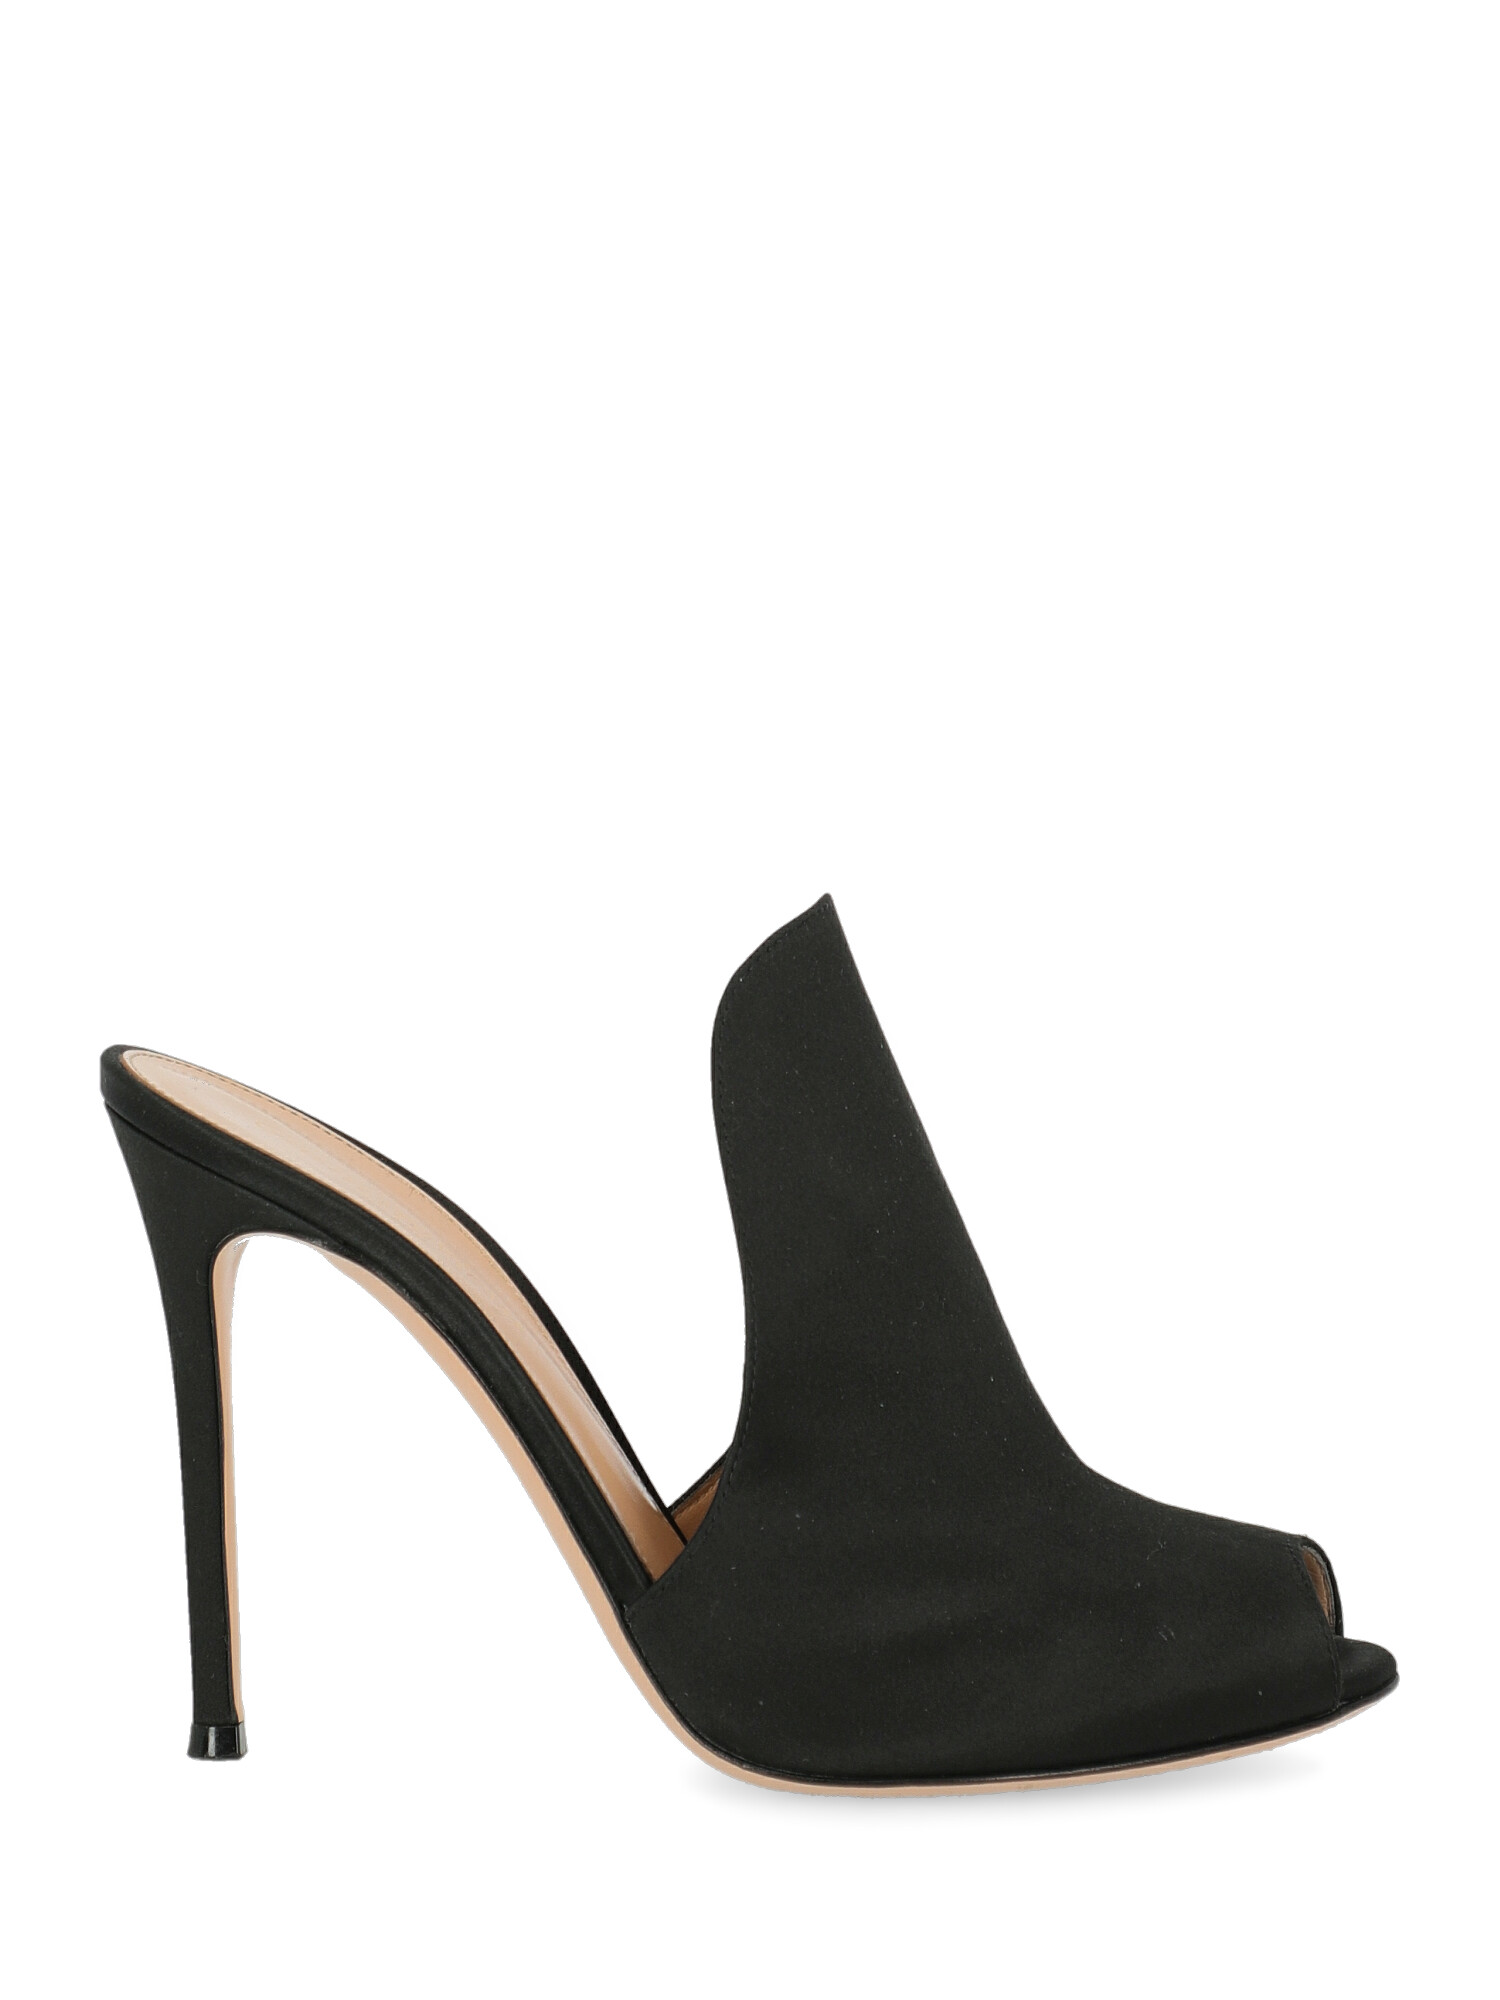 Pre-owned Gianvito Rossi Shoe In Black